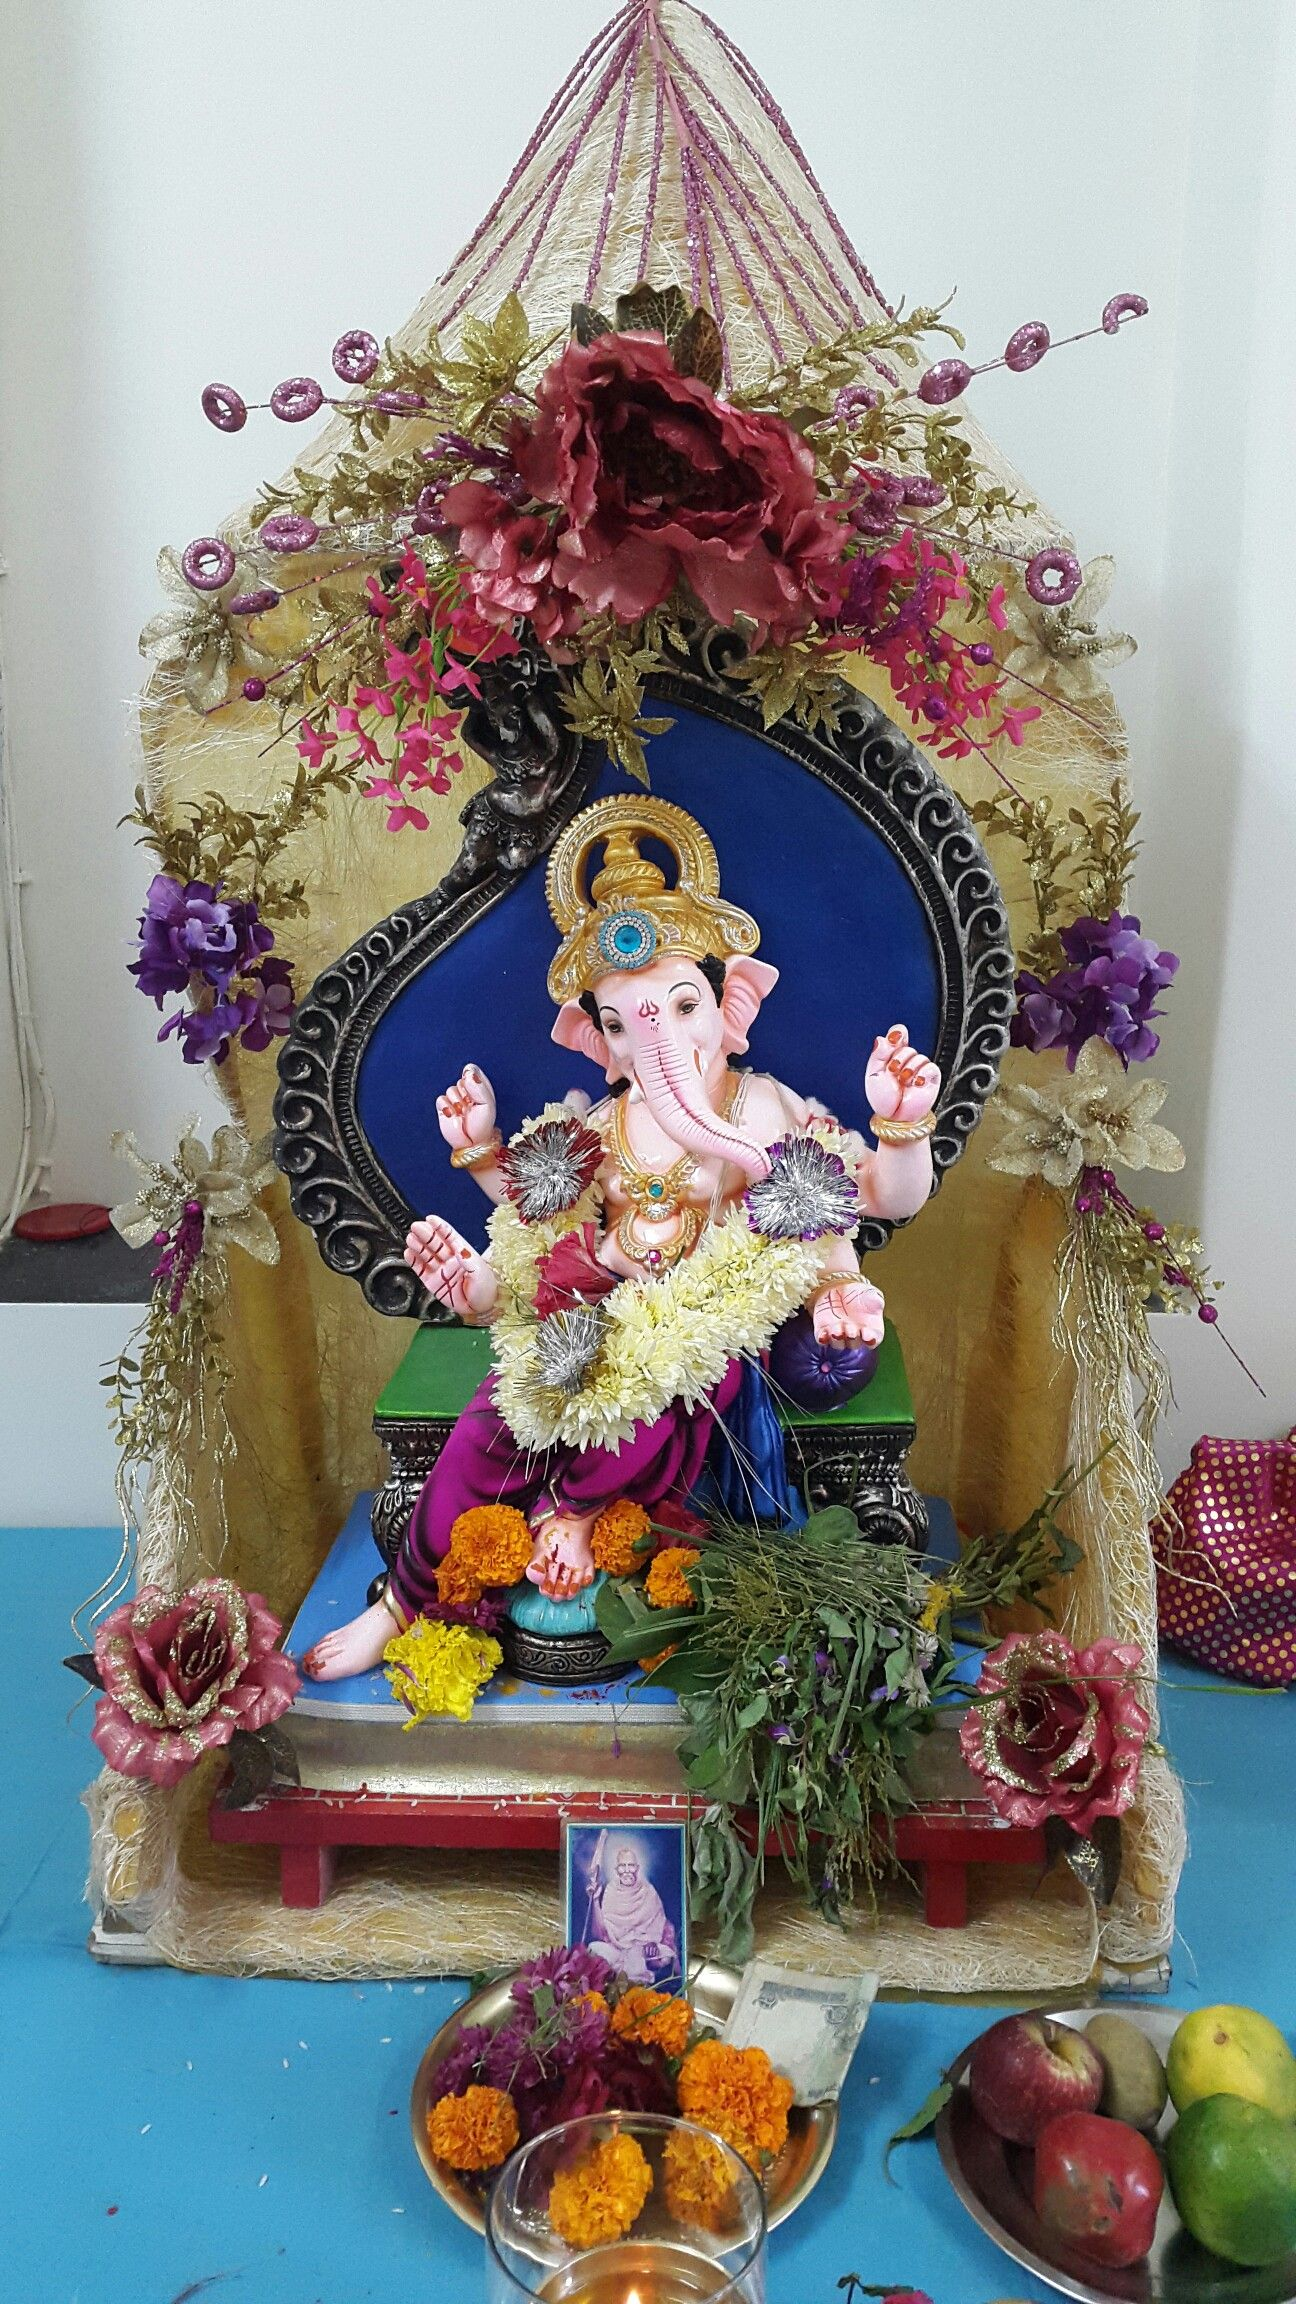 Happy Ganesh Chaturthi to one and all